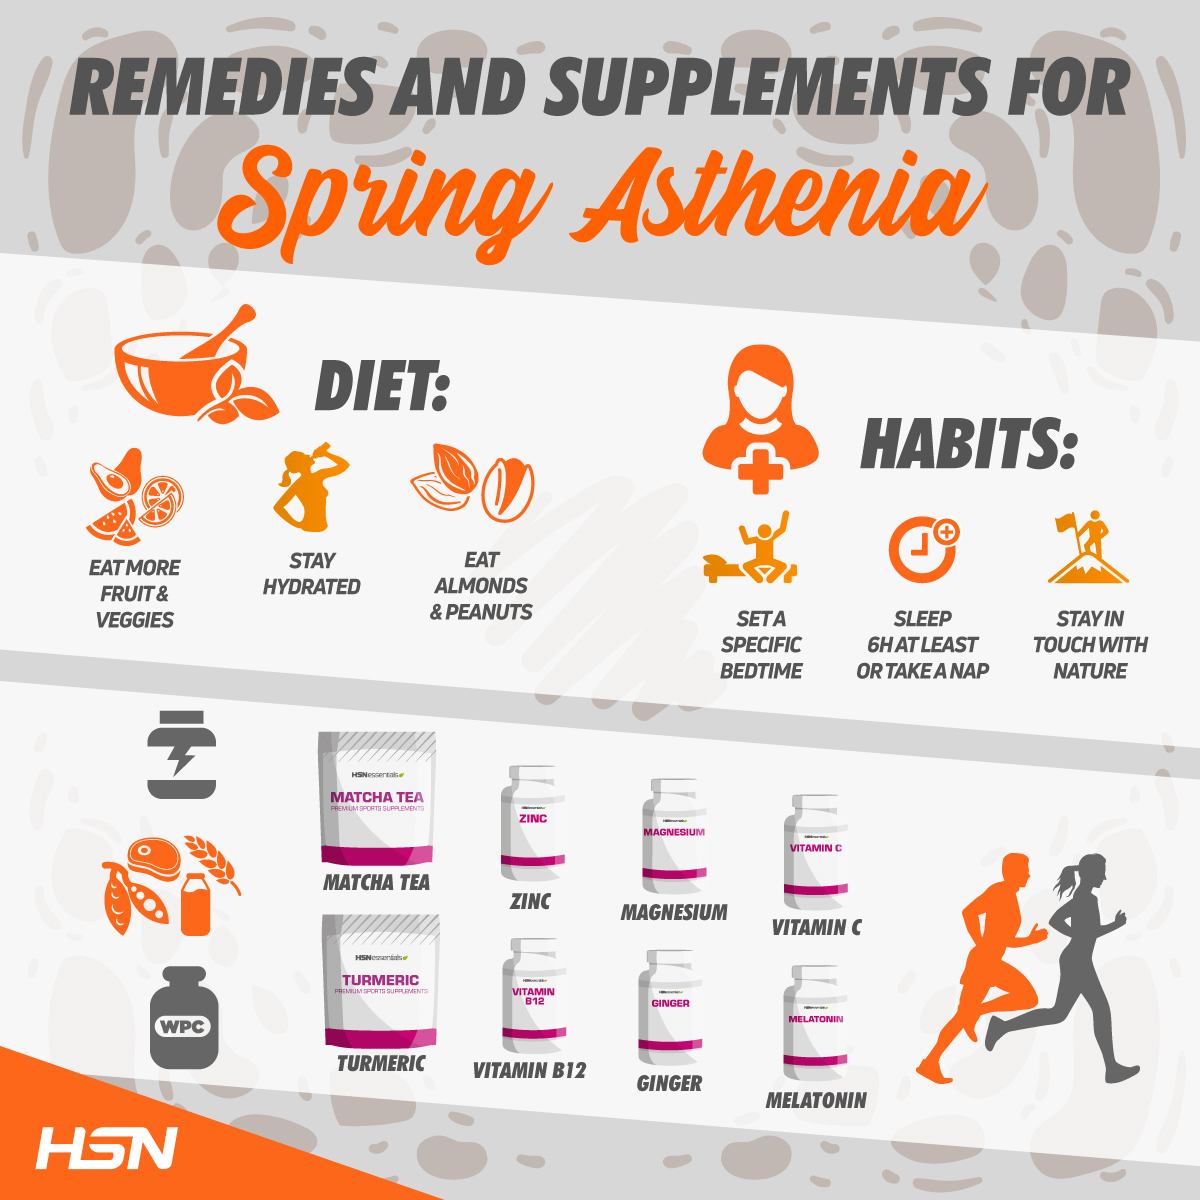 Remedies and Supplements for Spring Asthenia